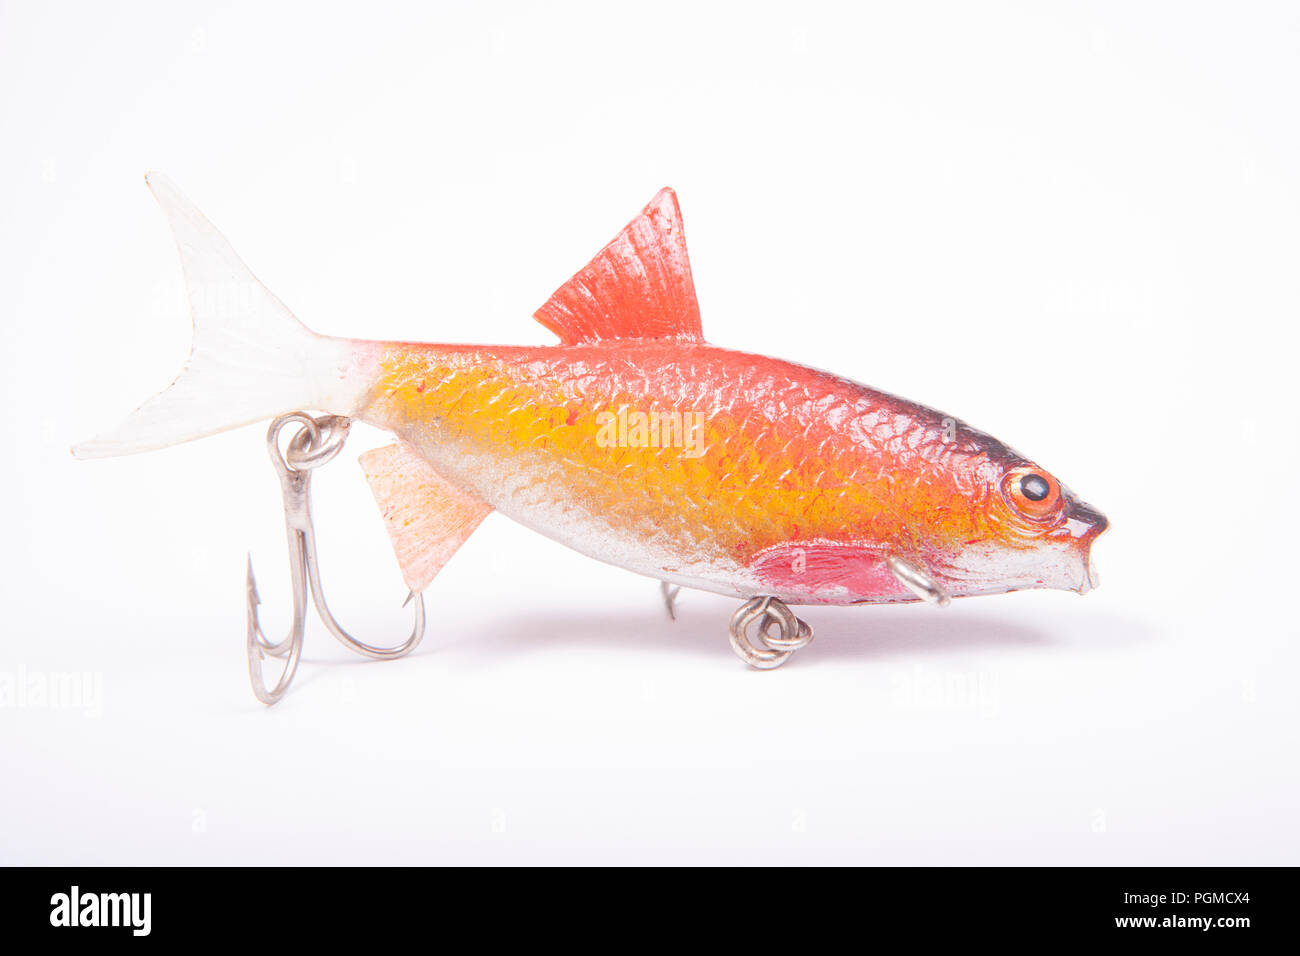 A lifelike fishing lure equipped with treble hooks for catching predatory fish. From a collection of vintage and modern fishing tackle. North Dorset E - Stock Image